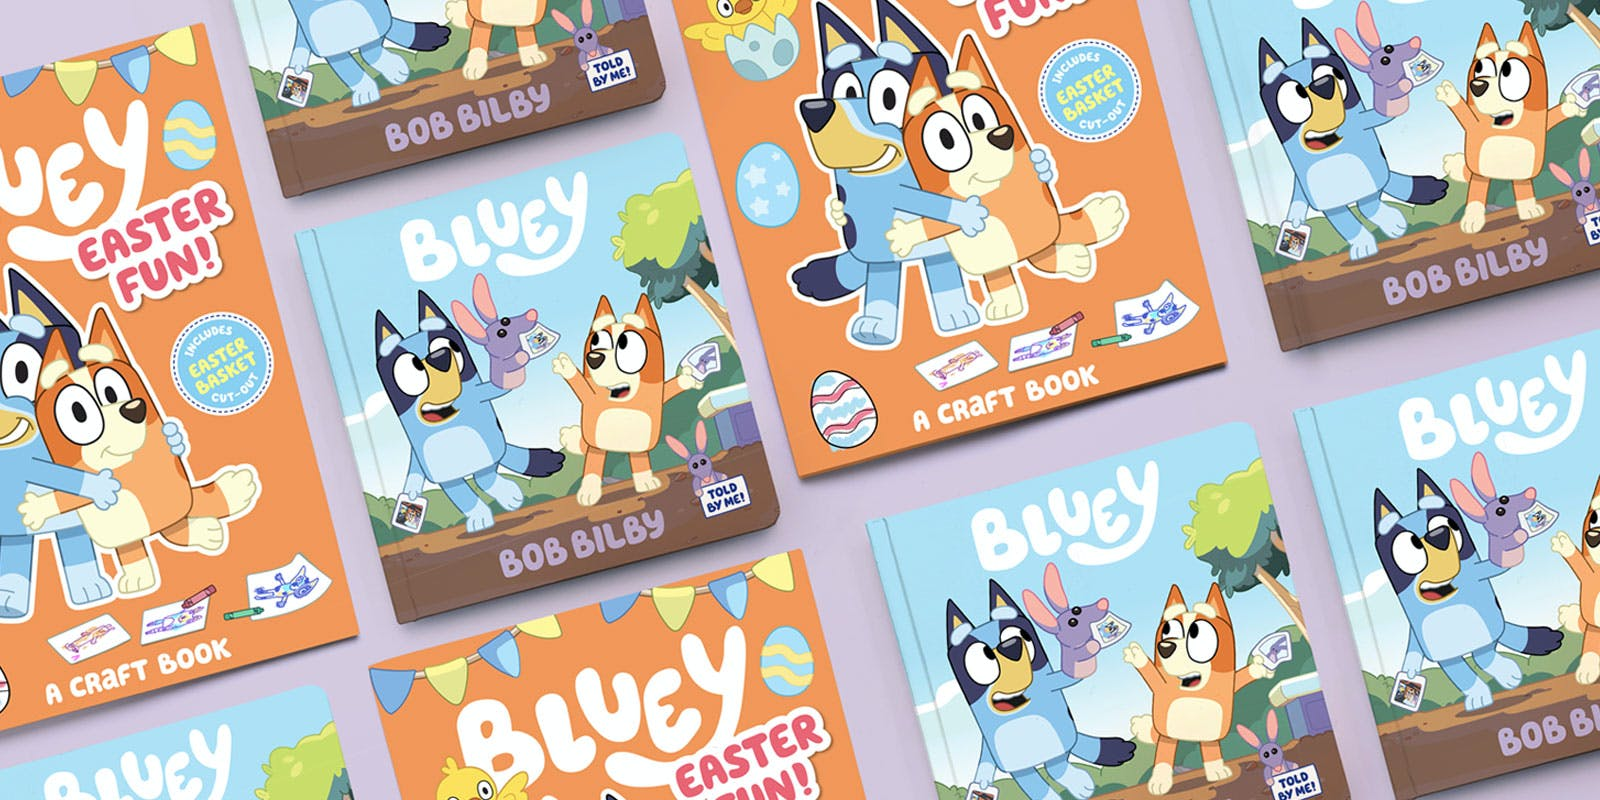 More Bluey books on their way in time for Easter!